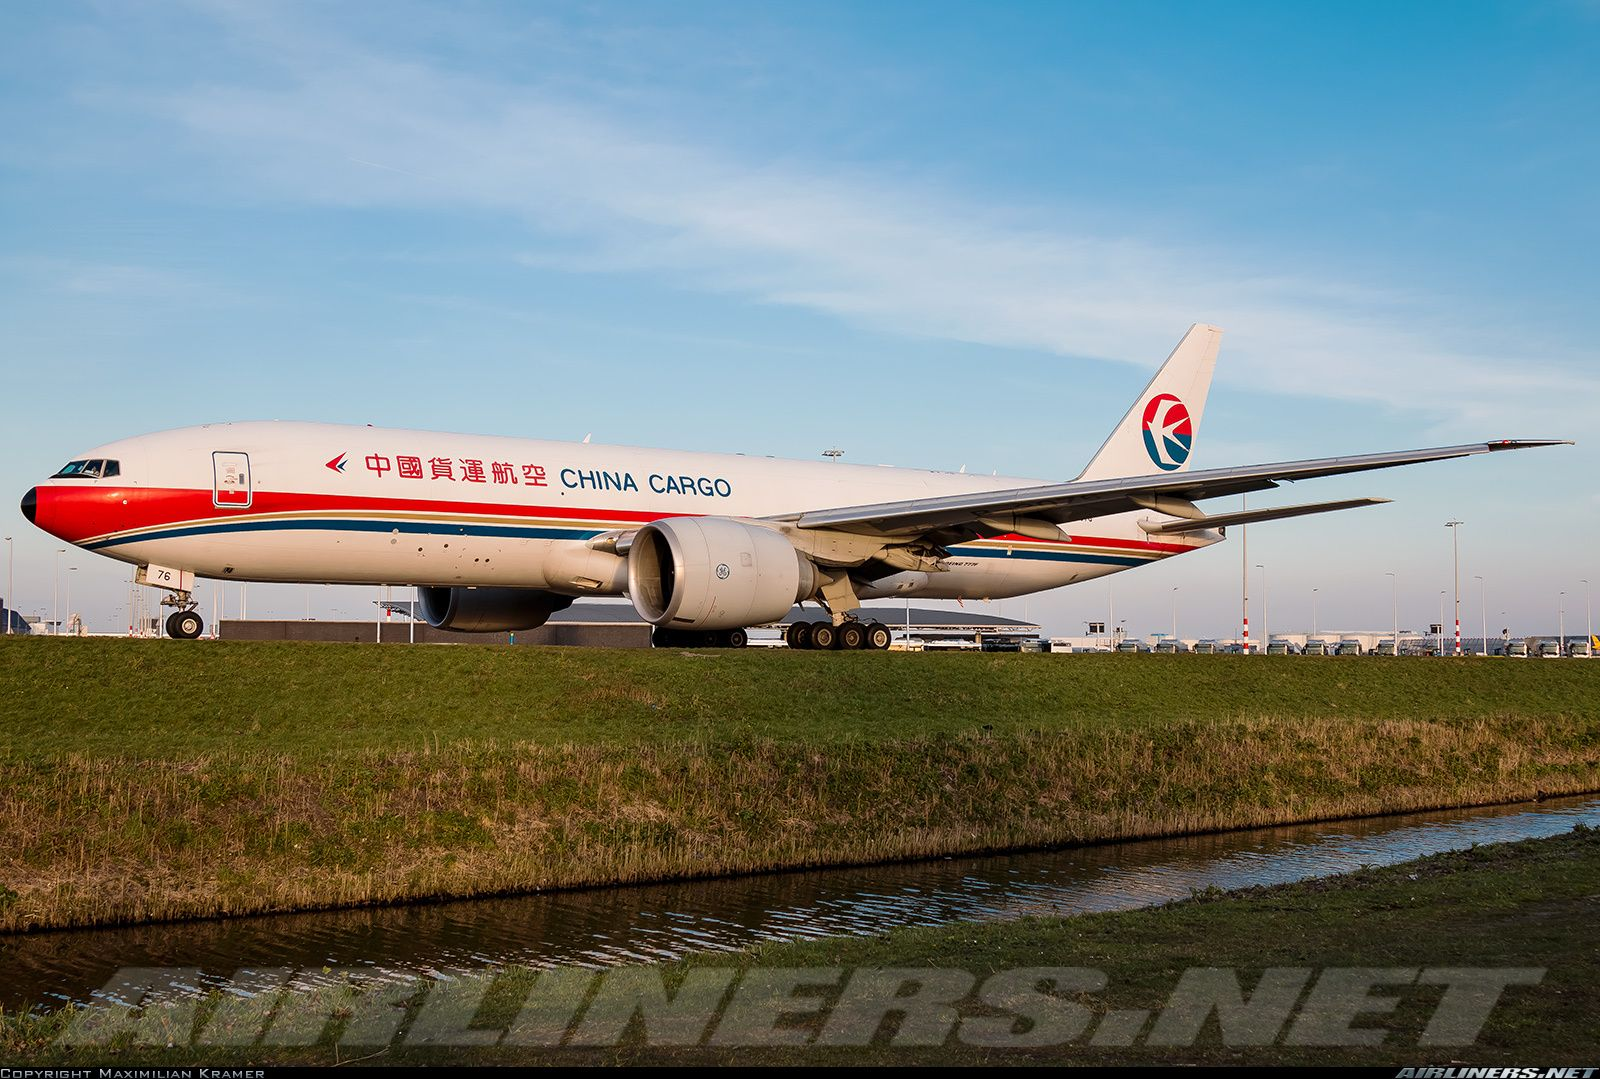 Boeing 777F6N, China Cargo Airlines, B2076, cn 37711/846